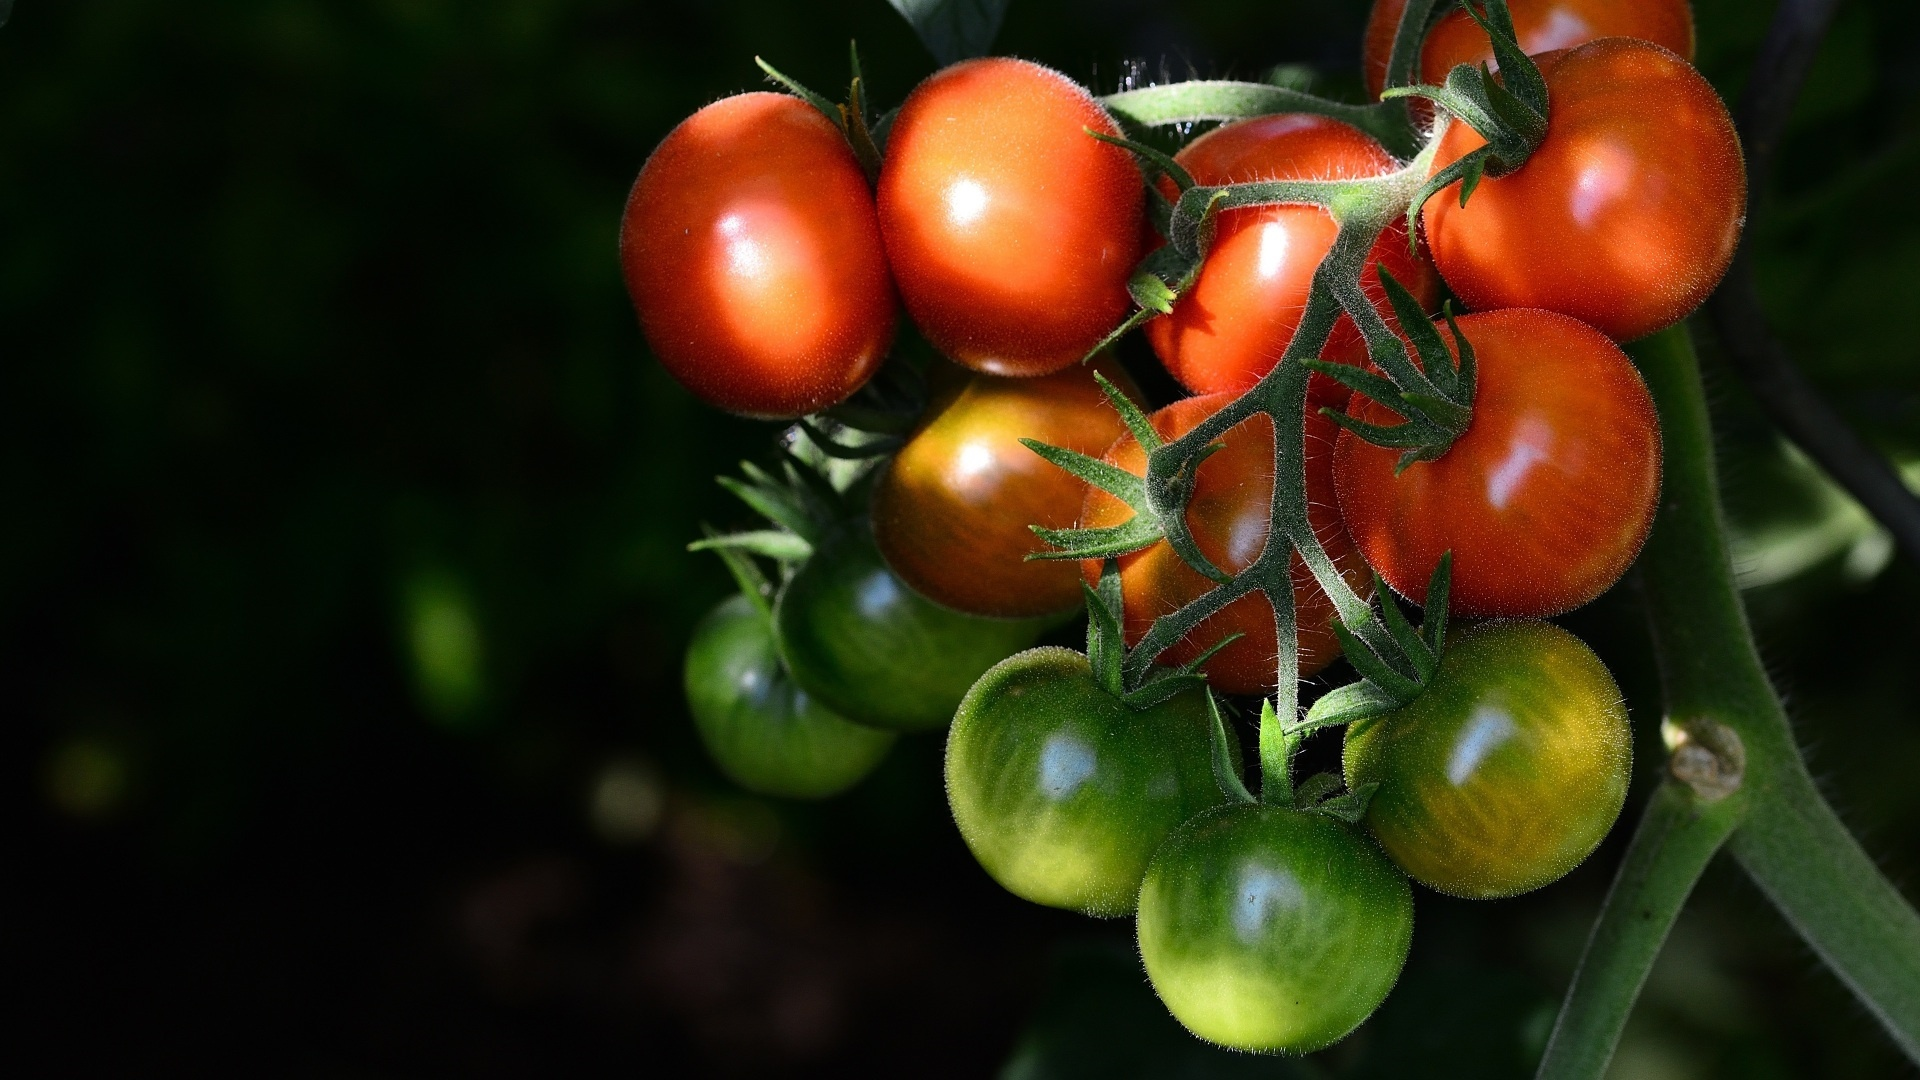 Tomatoes hd wallpaper download